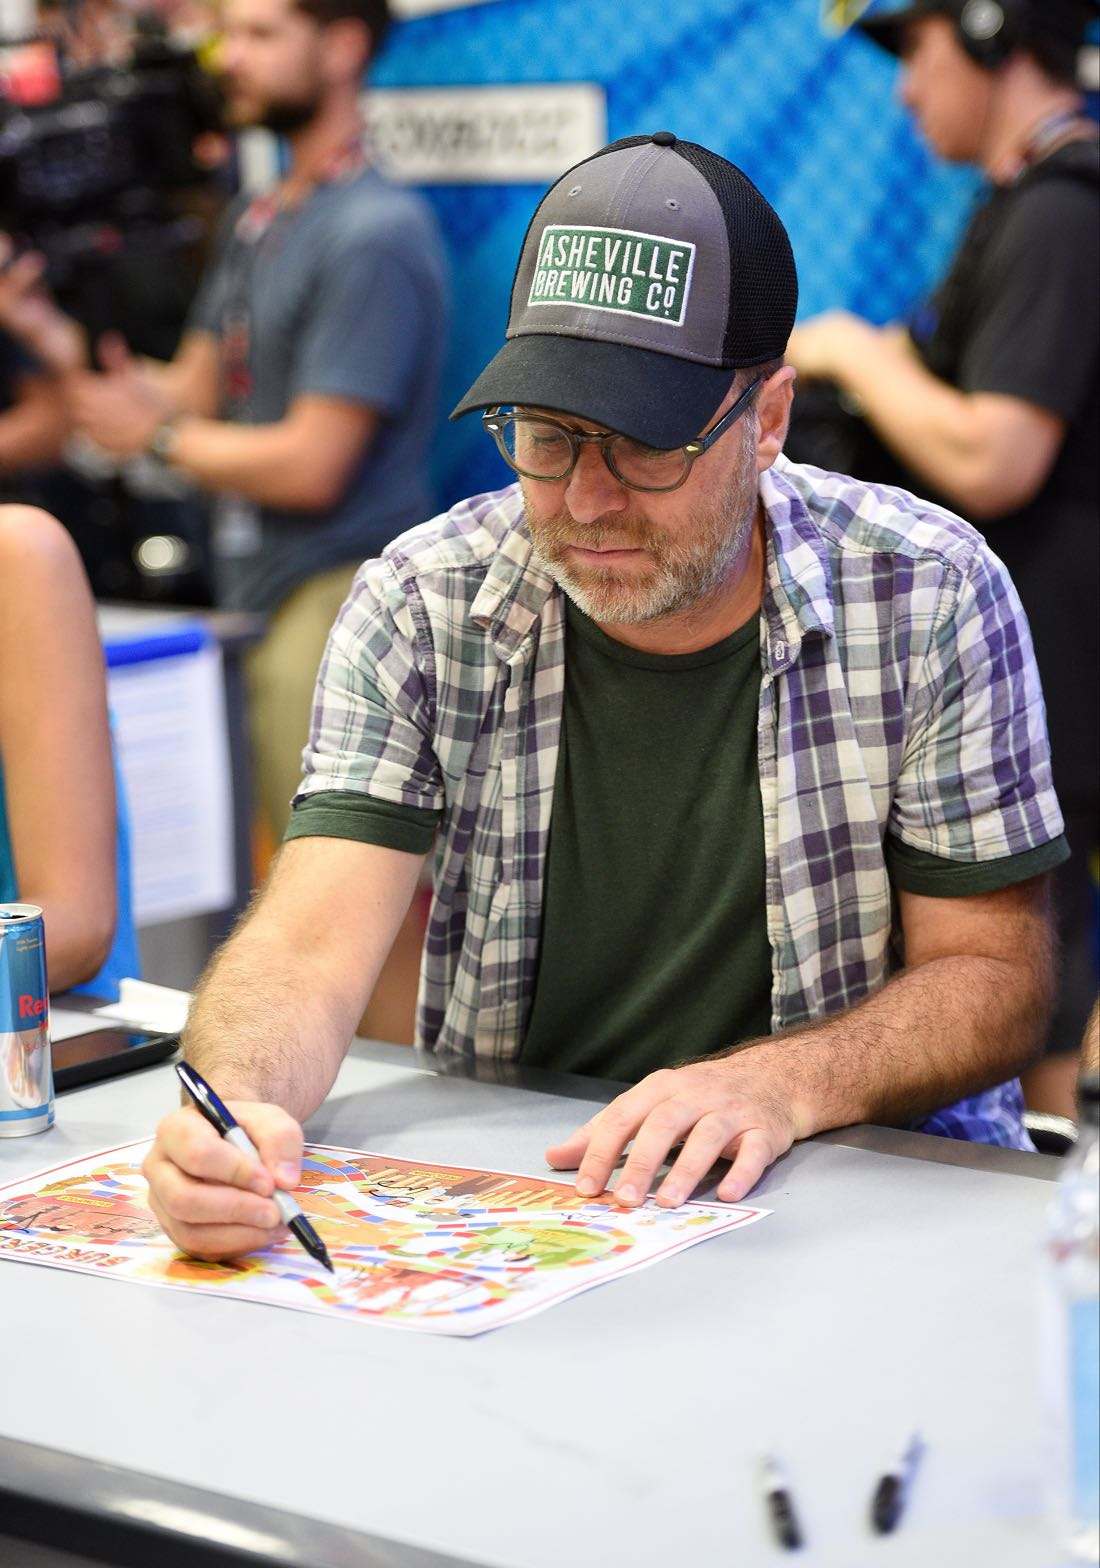 FOX FANFARE AT SAN DIEGO COMIC-CON © 2016: BOB'S BURGERS cast member H. Jon Benjamin during BOB'S BURGERS booth signing on Friday, July 22 at the FOX FANFARE AT SAN DIEGO COMIC-CON © 2016. CR: Alan Hess/FOX © 2016 FOX BROADCASTING